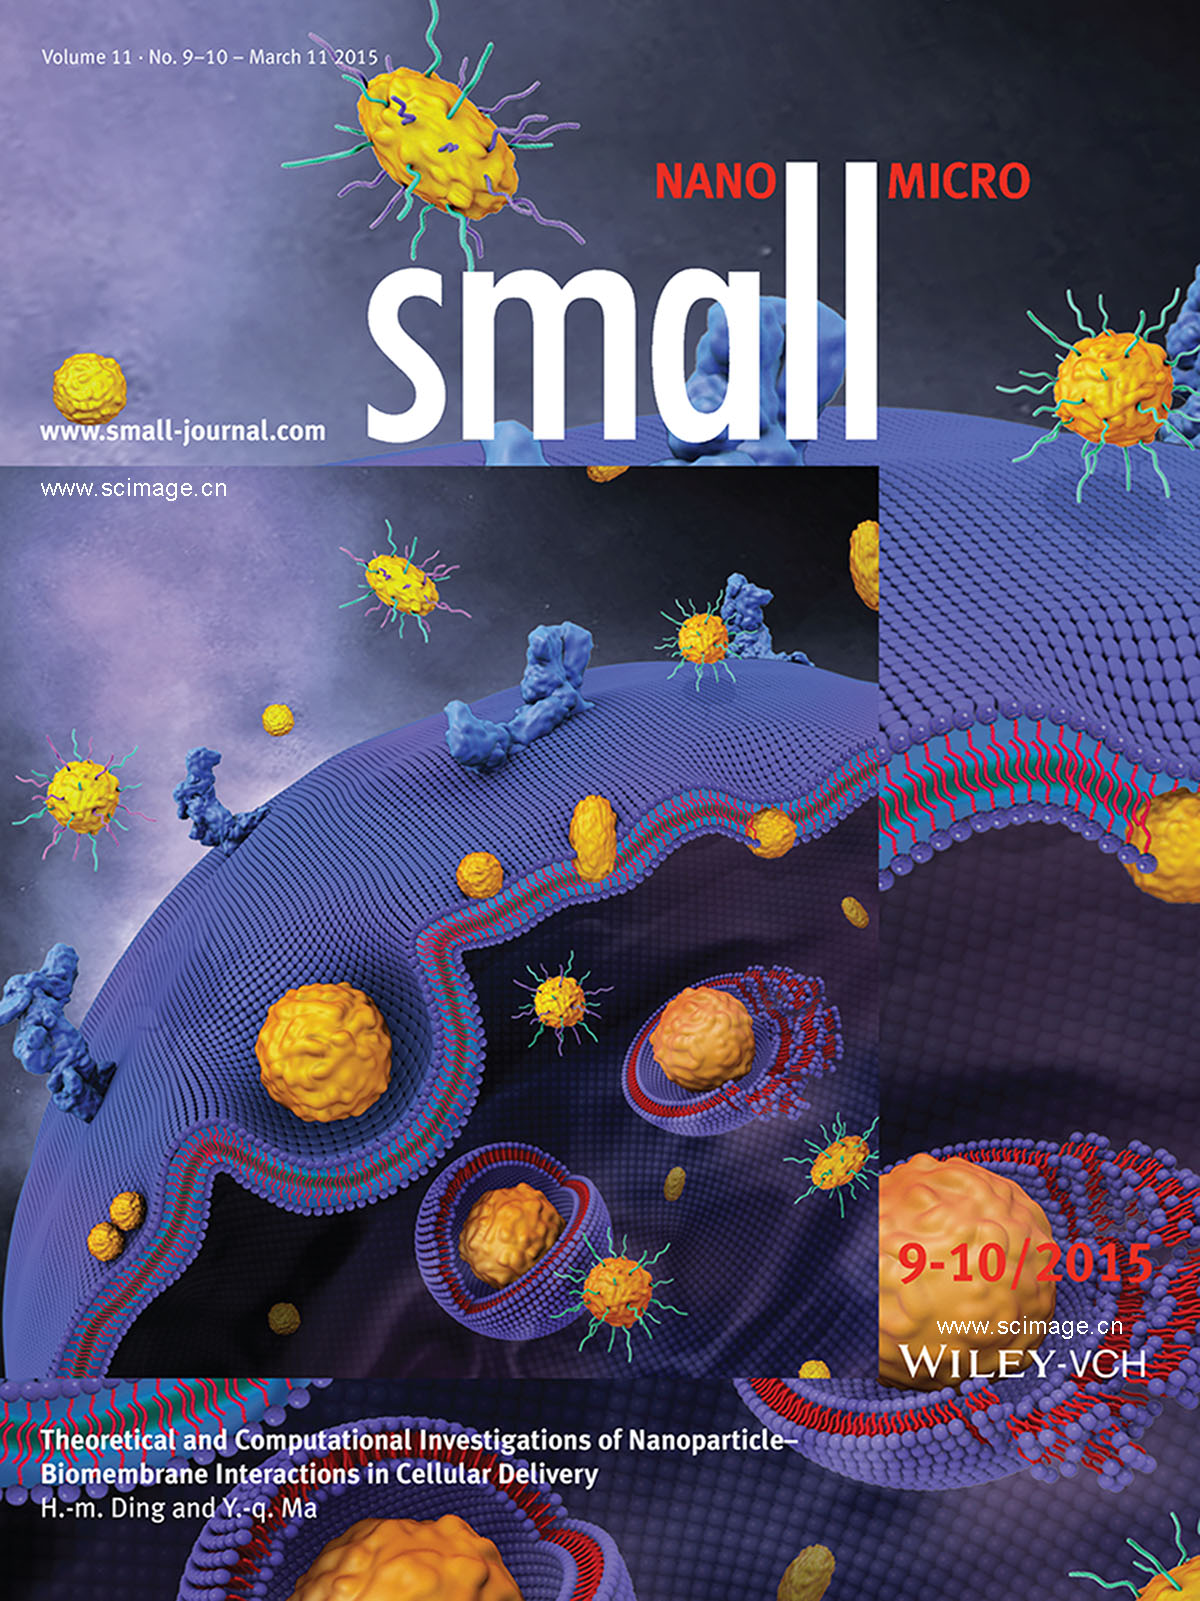 Cellular Uptake: Theoretical and Computational Investigations of Nanoparticle–Biomembrane Interactions in Cellular Delivery (Small 9-10/2015) (page 1014)